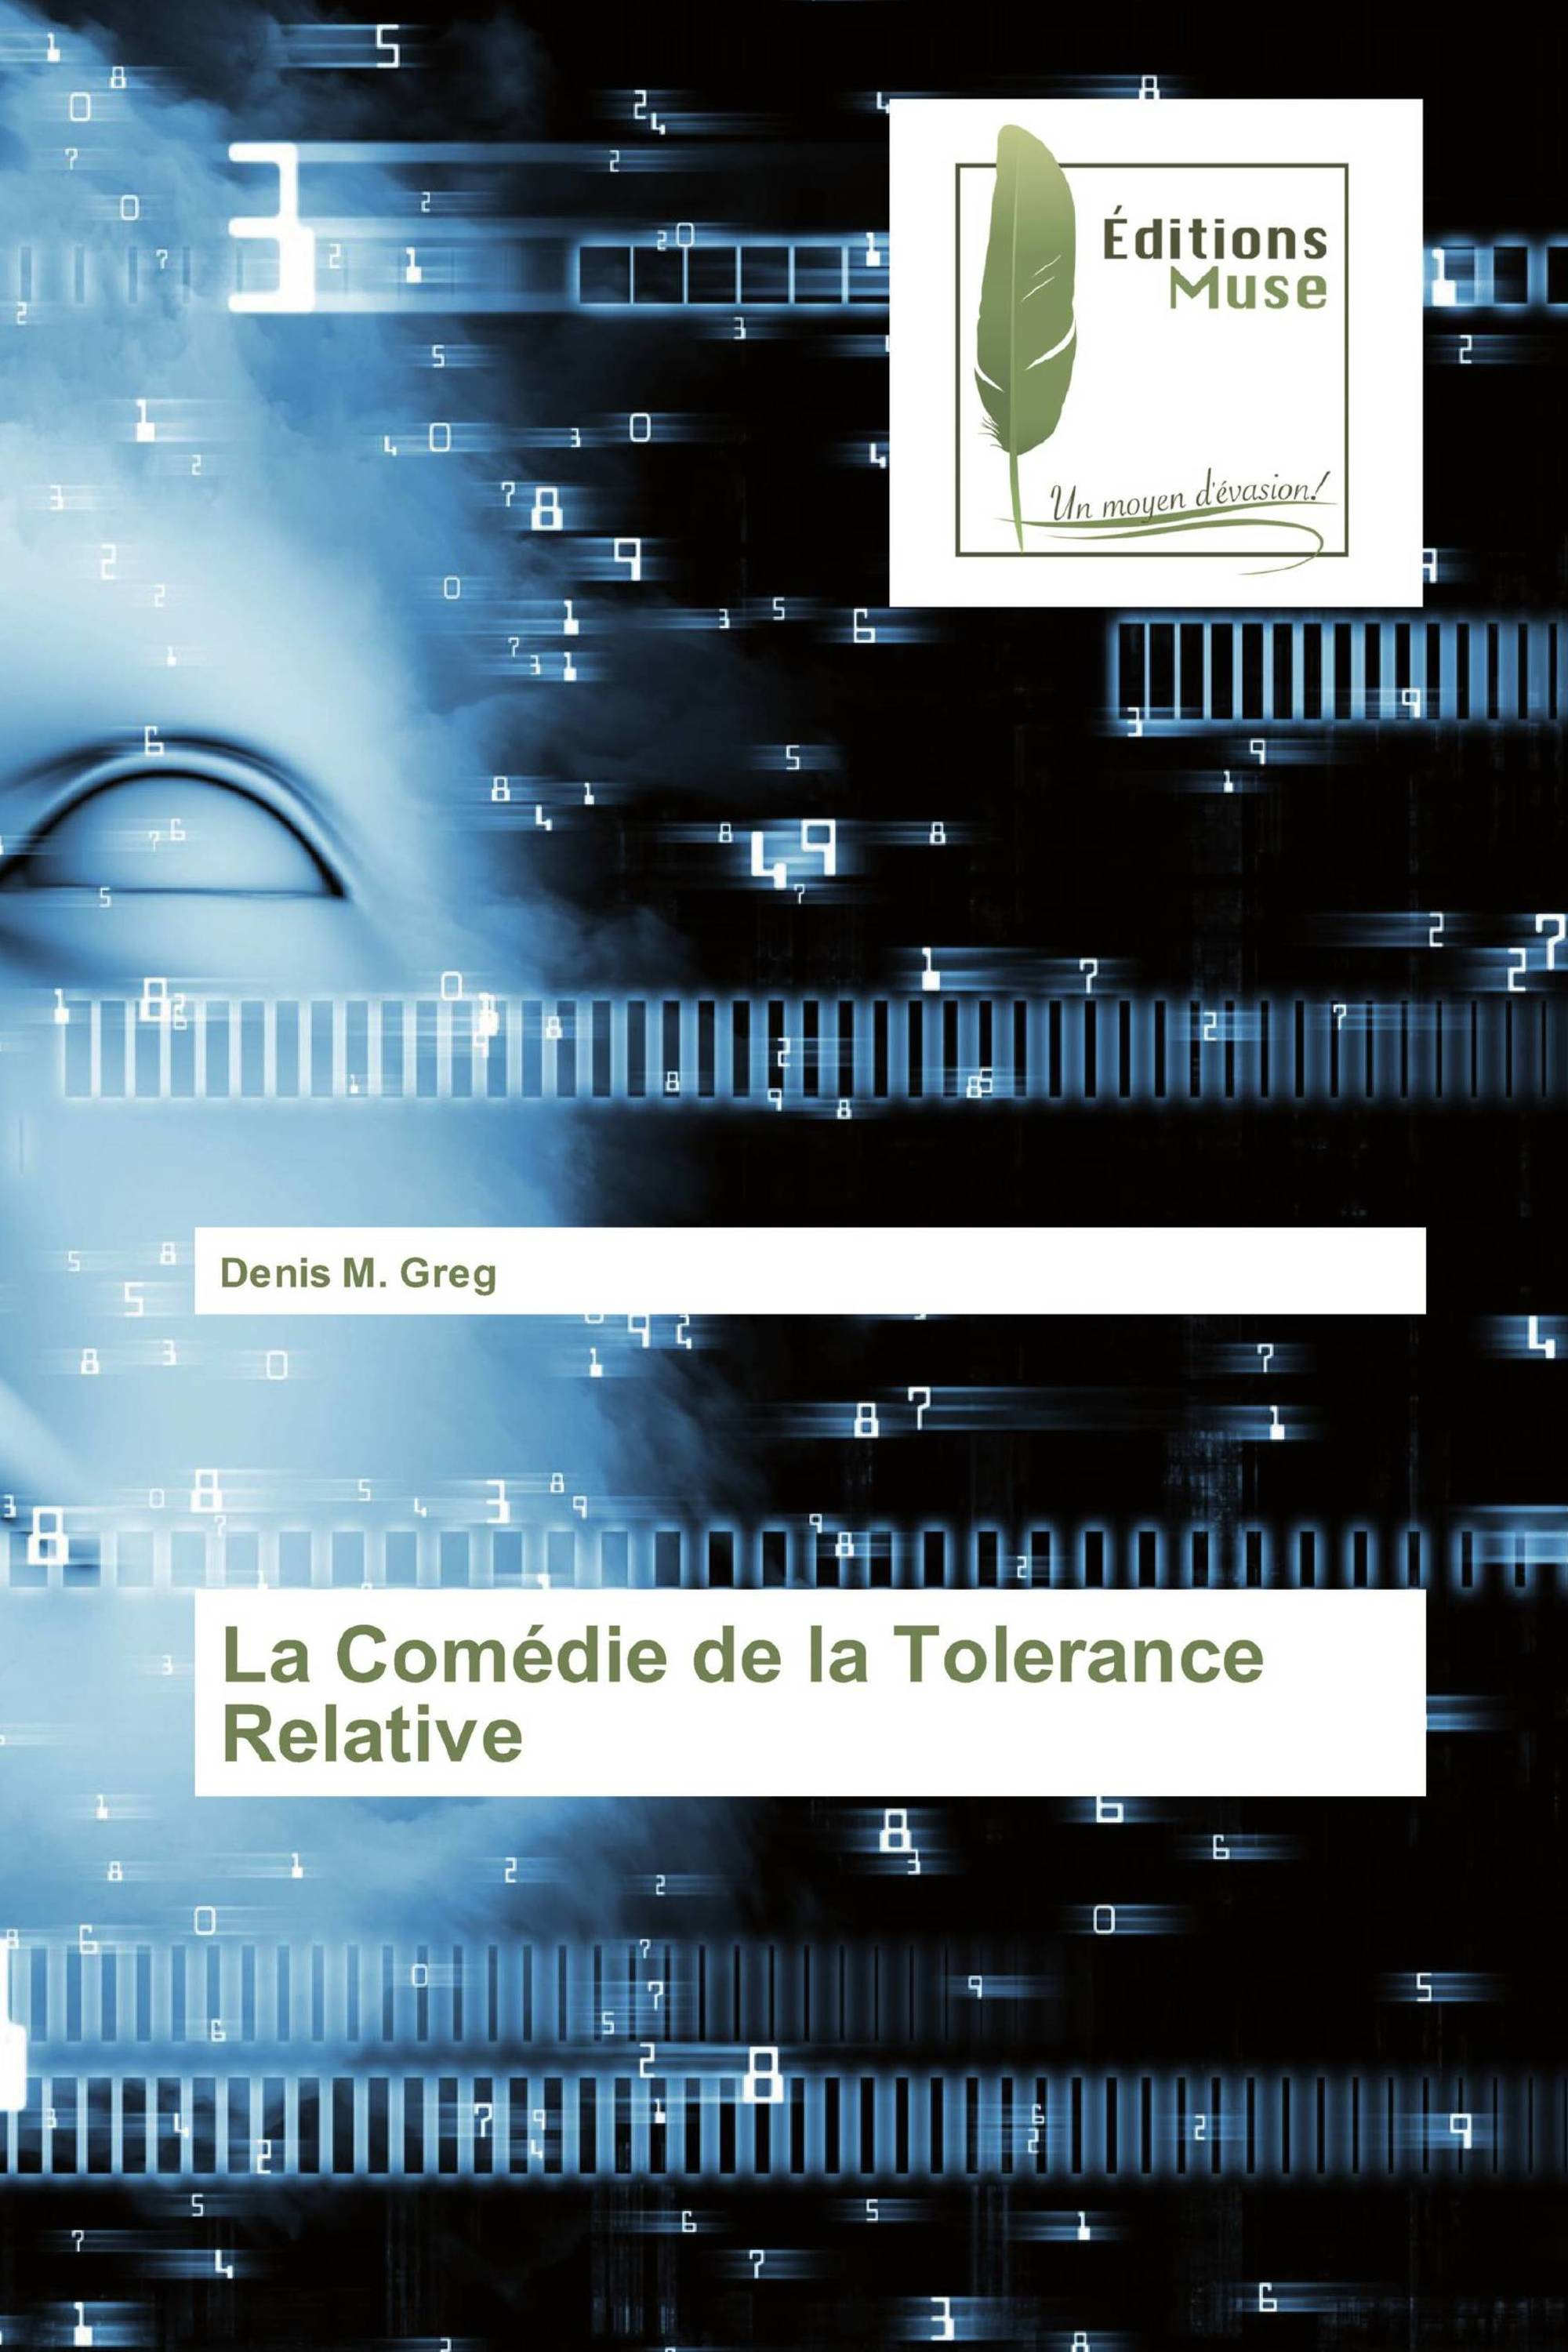 La Comédie de la Tolerance Relative